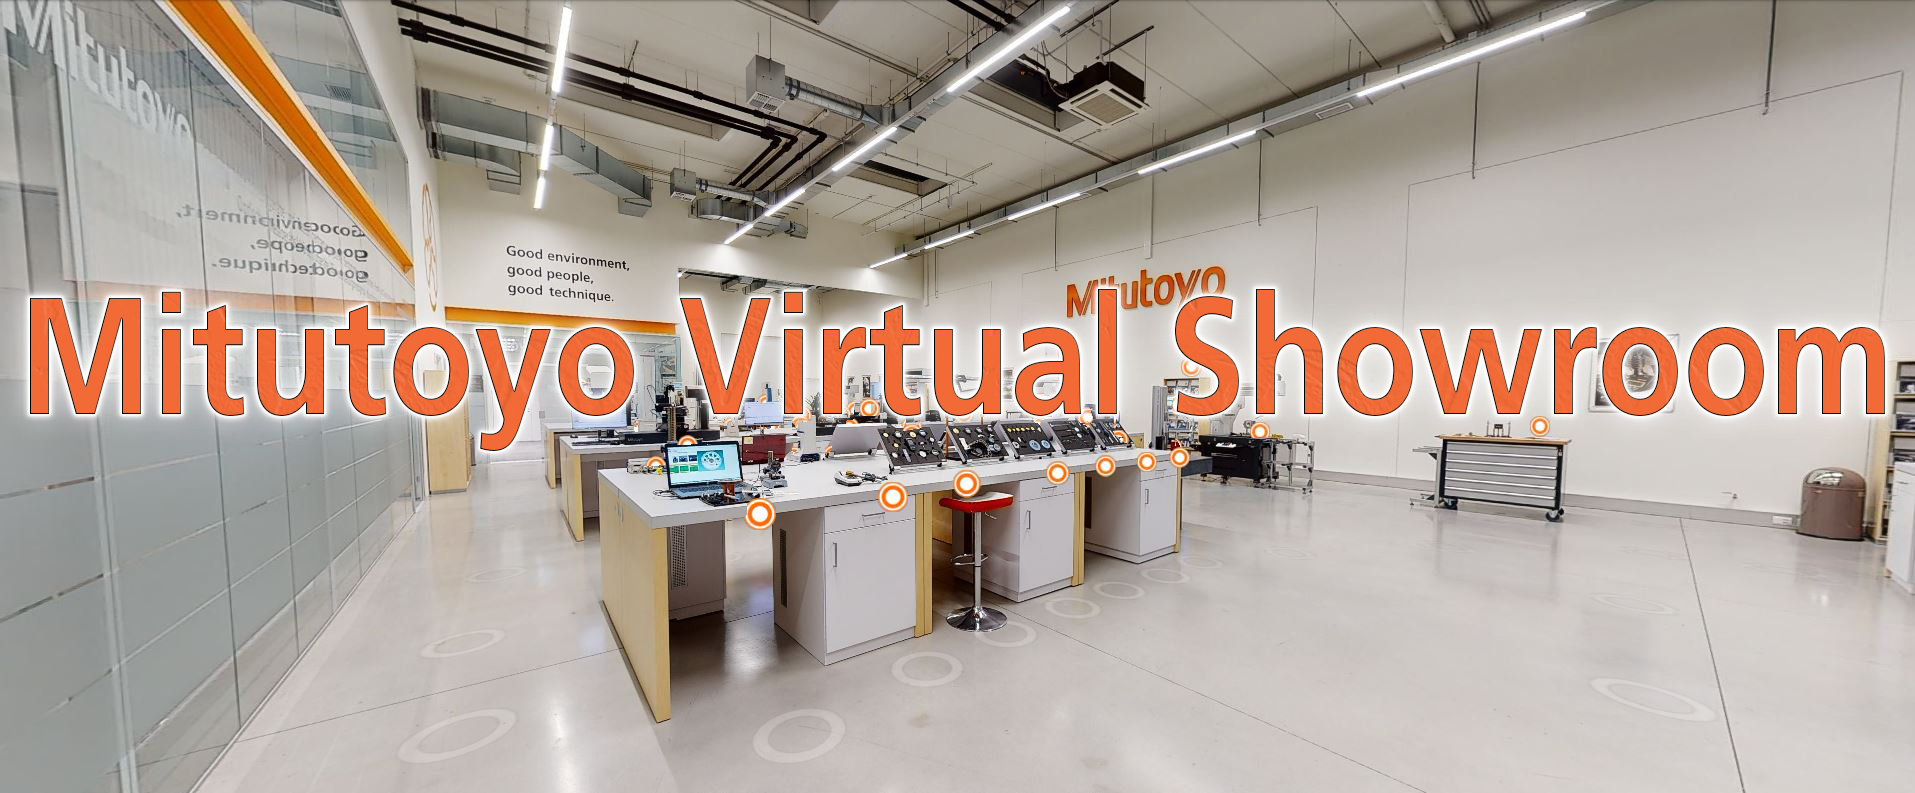 Mitutoyo Virtual Showroom